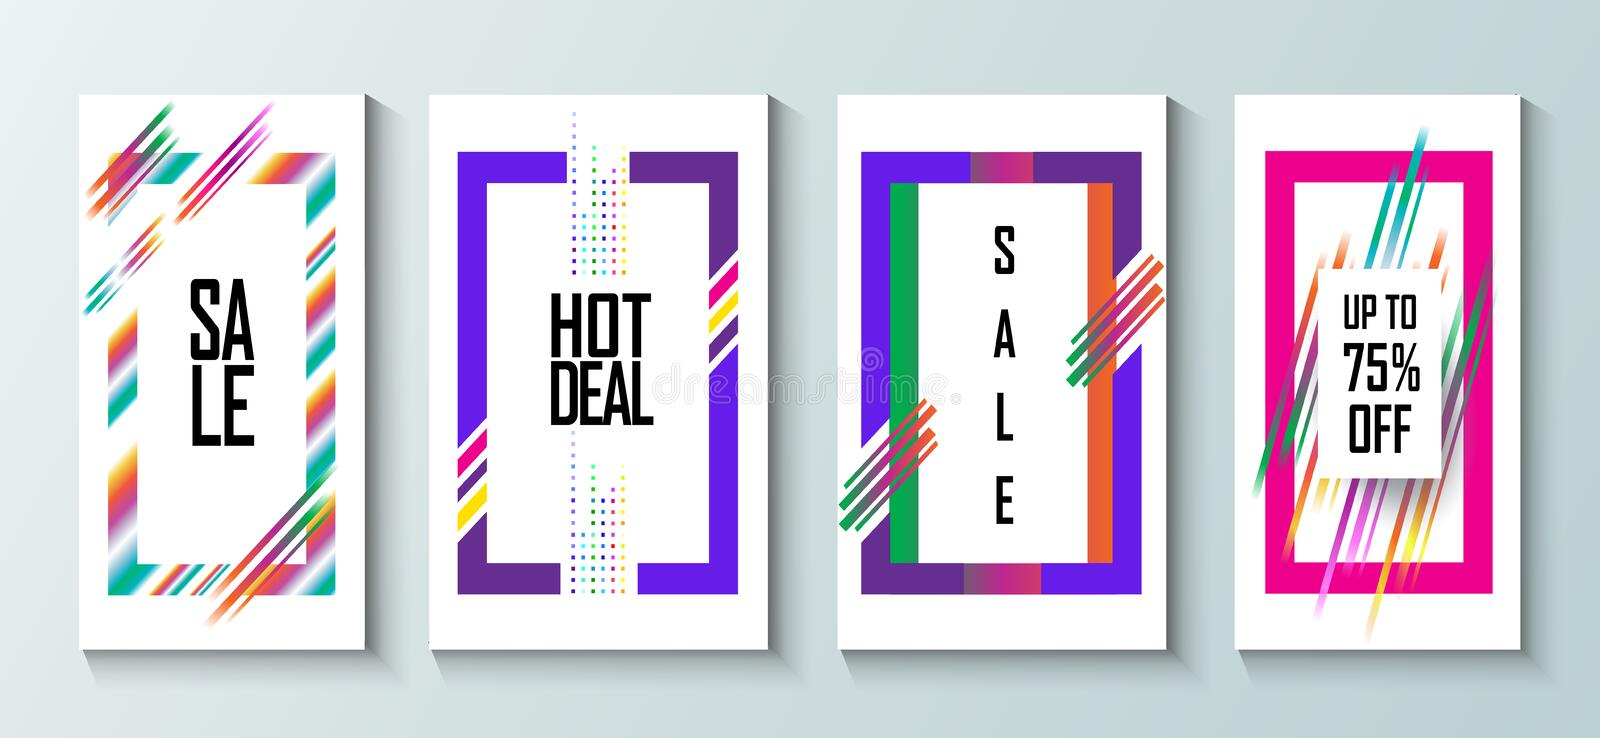 Sale hipster pop art vector illustration